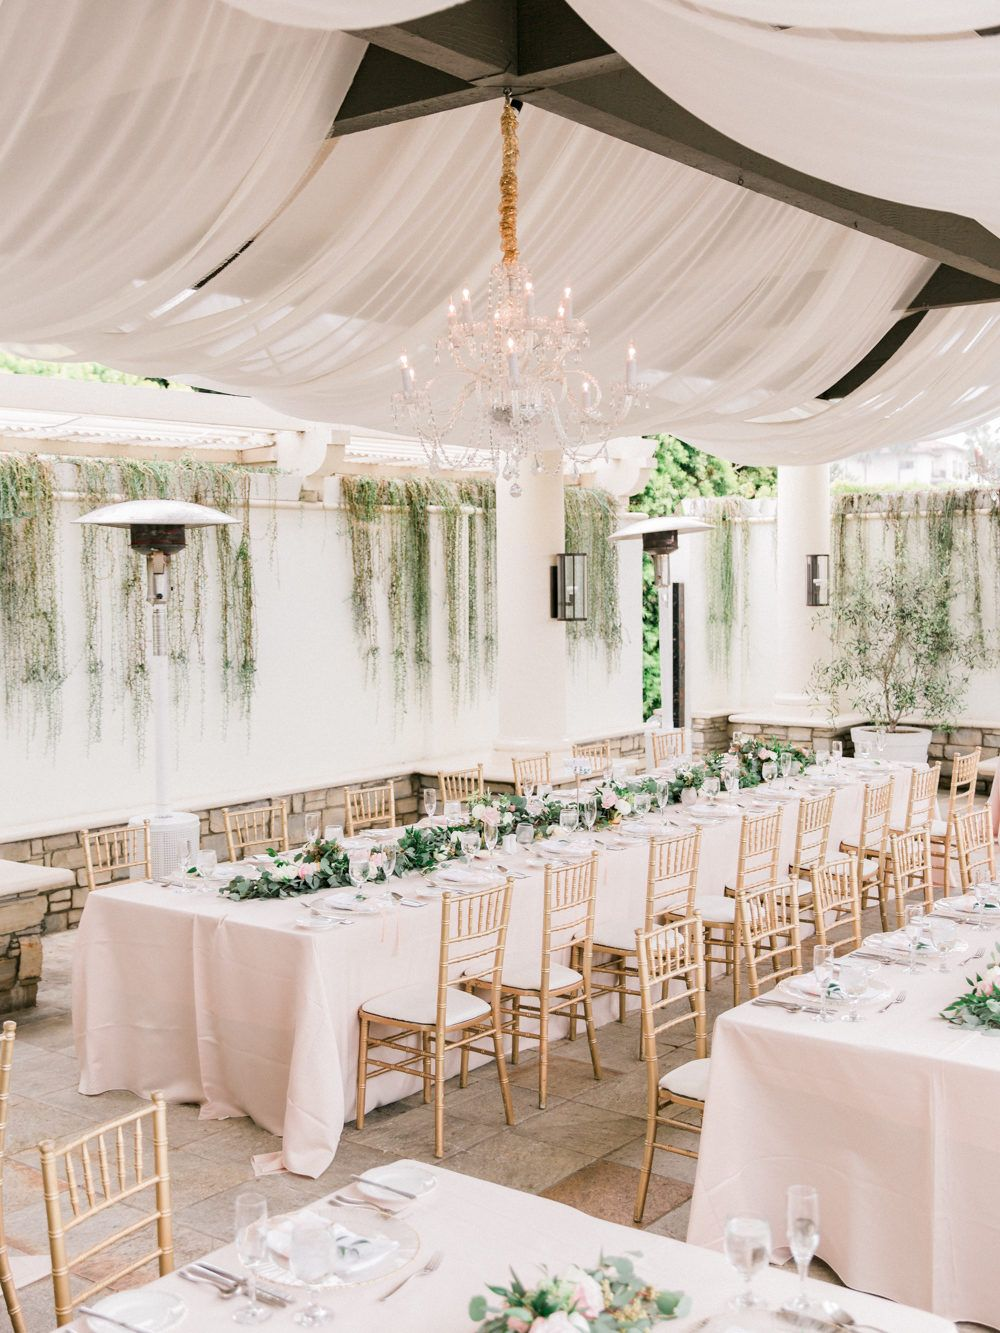 Traditional wedding decor ideas 2018  A Classic Affair Set Against the Beauty of Monarch Beach Resort in